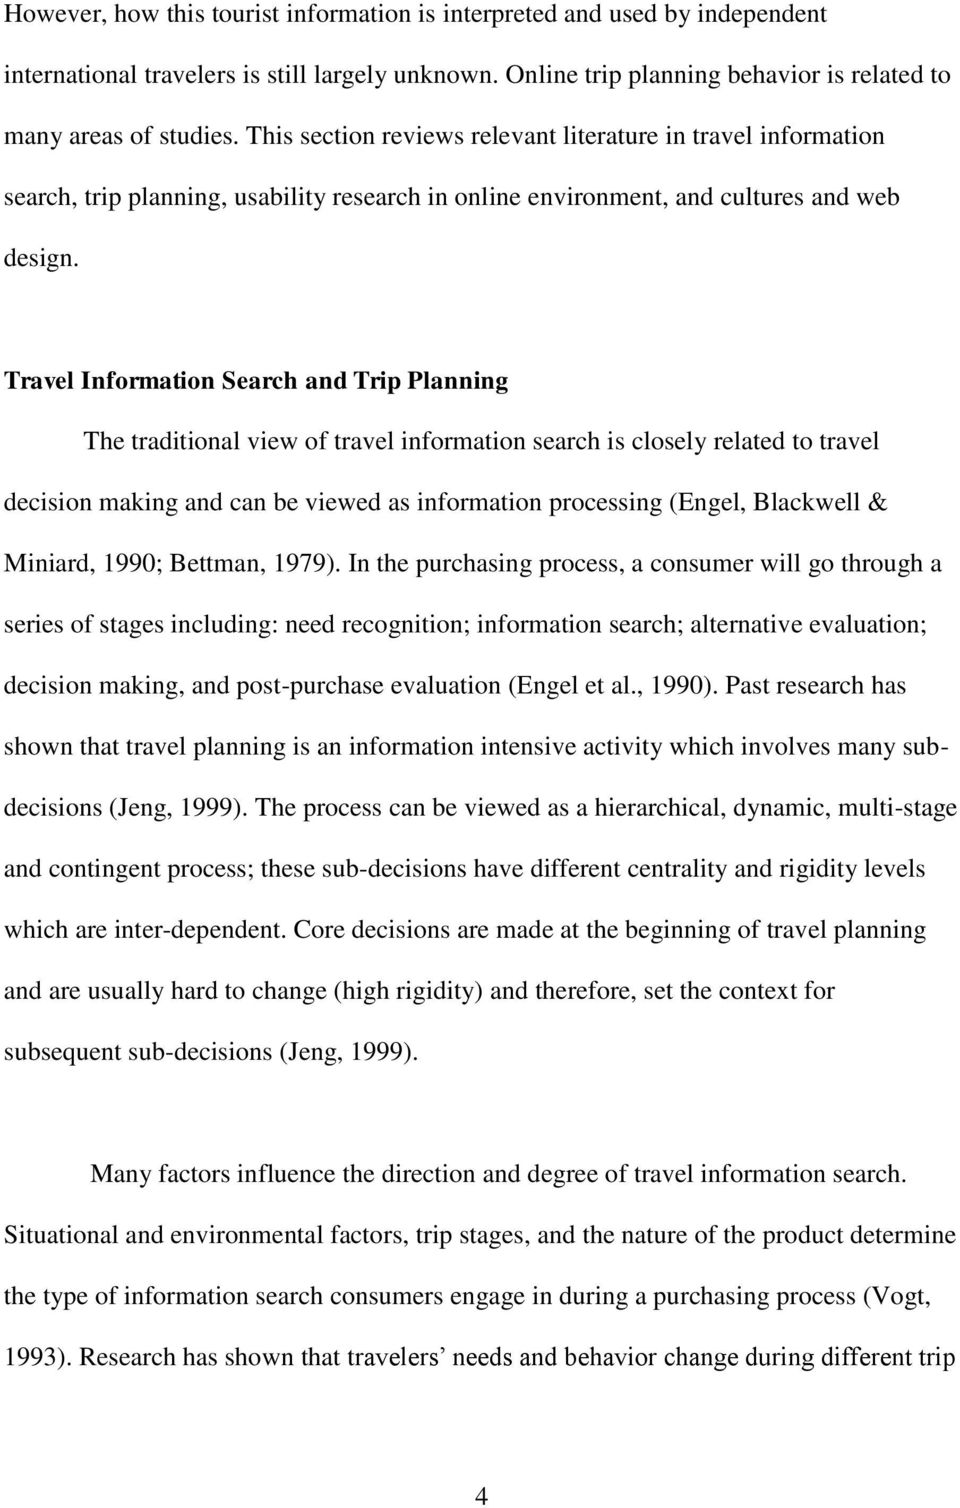 Travel Information Search and Trip Planning The traditional view of travel information search is closely related to travel decision making and can be viewed as information processing (Engel,